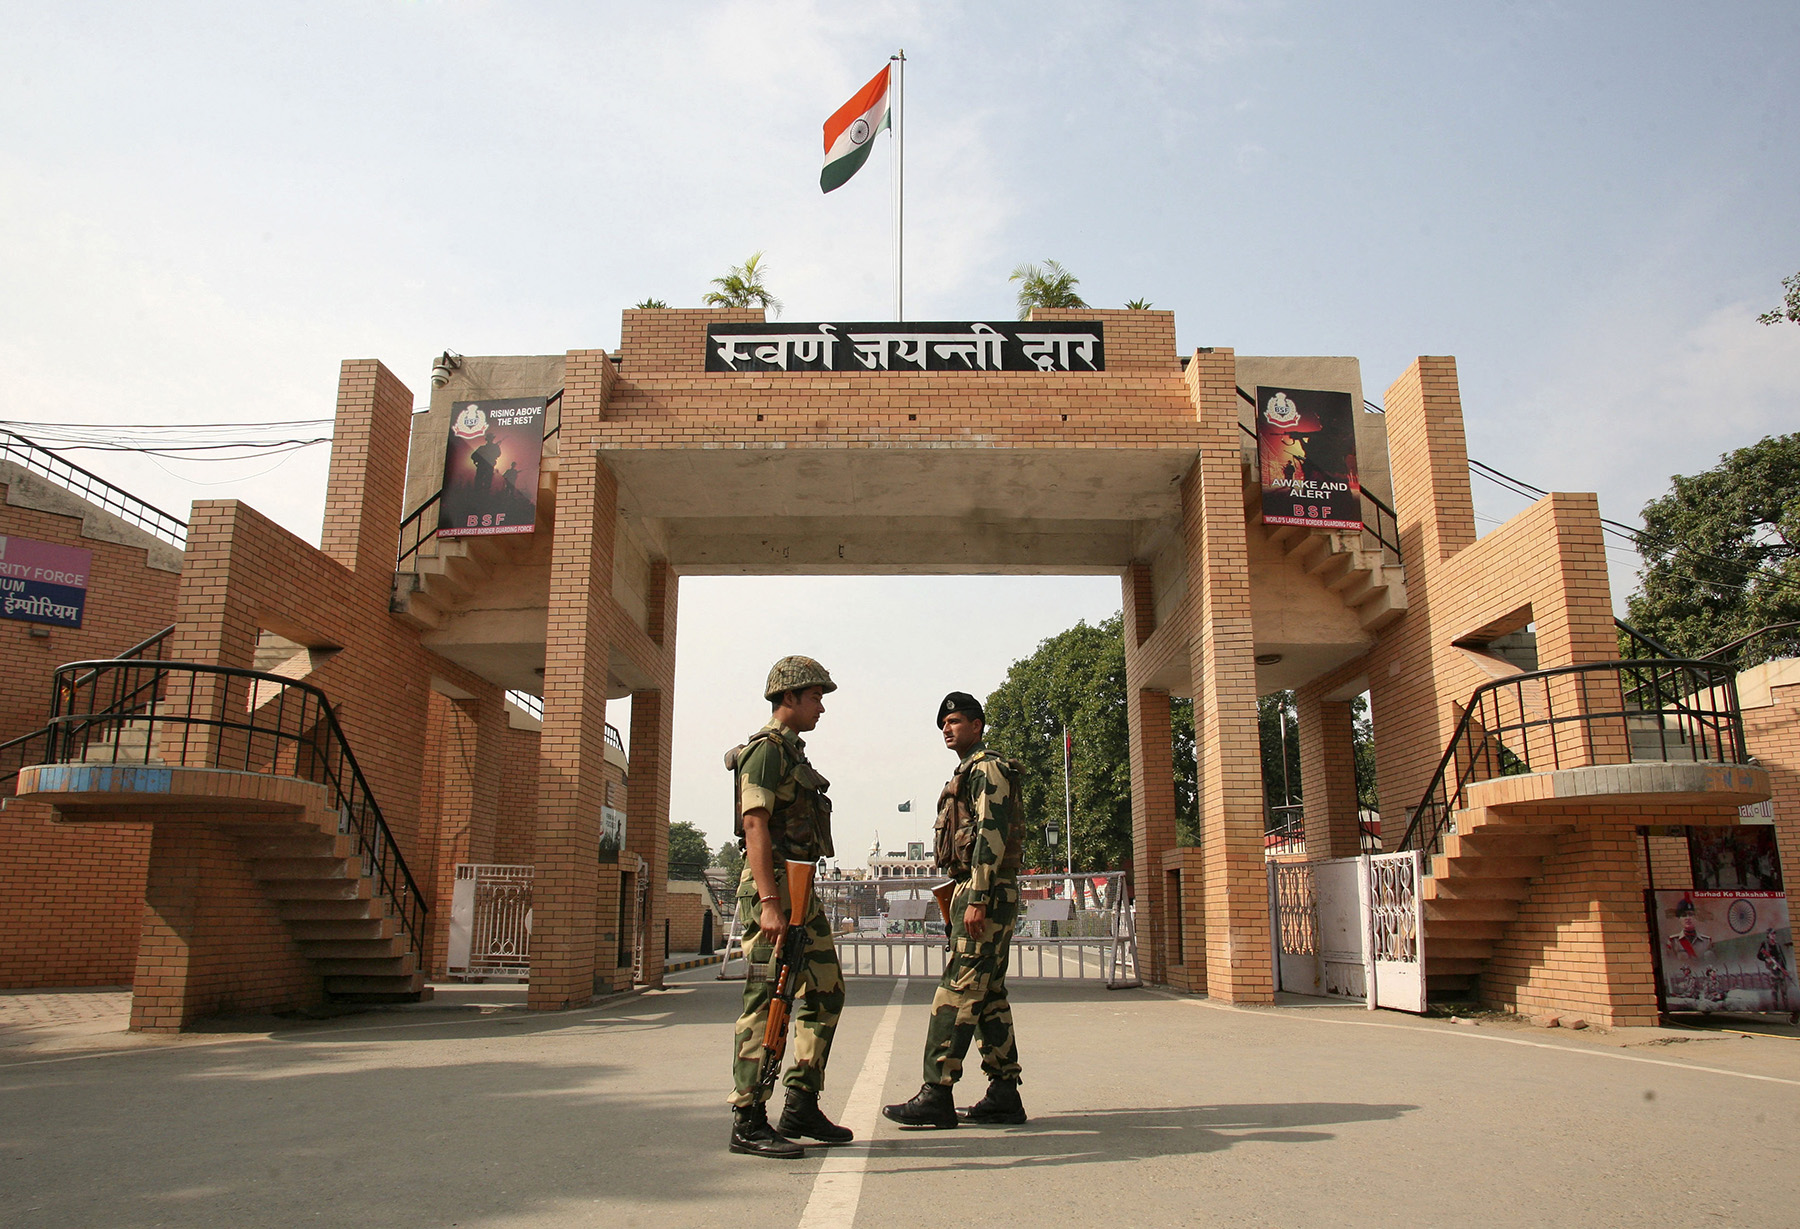 Indian border security force soldiers prtrol in front of Wagah border gate.